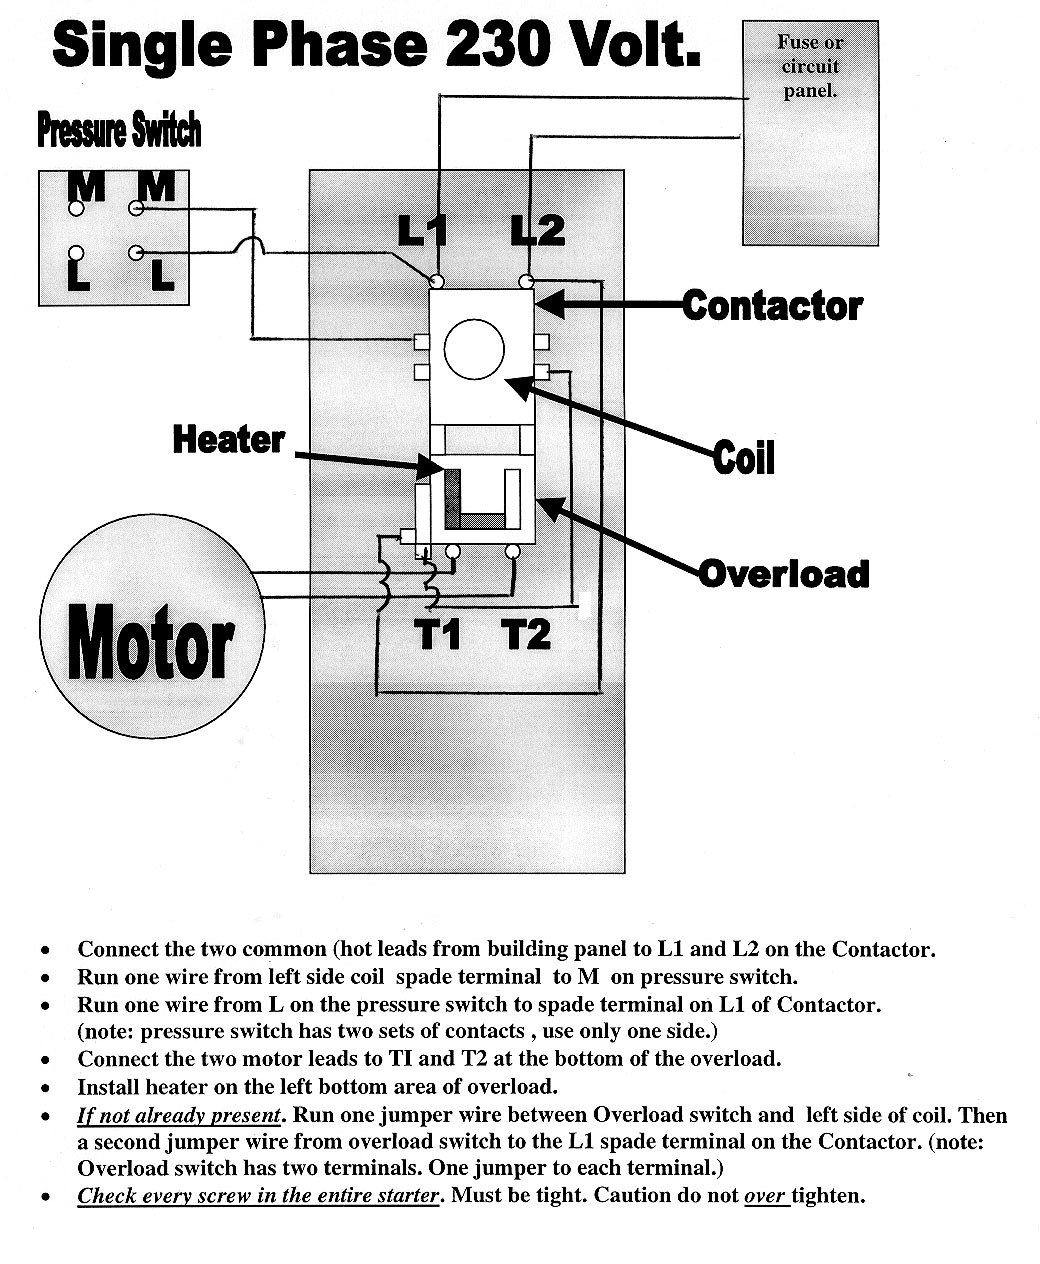 single phase motor starter wiring diagram Collection-Fancy Electric Motor Wiring Diagram Single Phase 47 About Remodel With Three Weg 3 For Motors 19-l